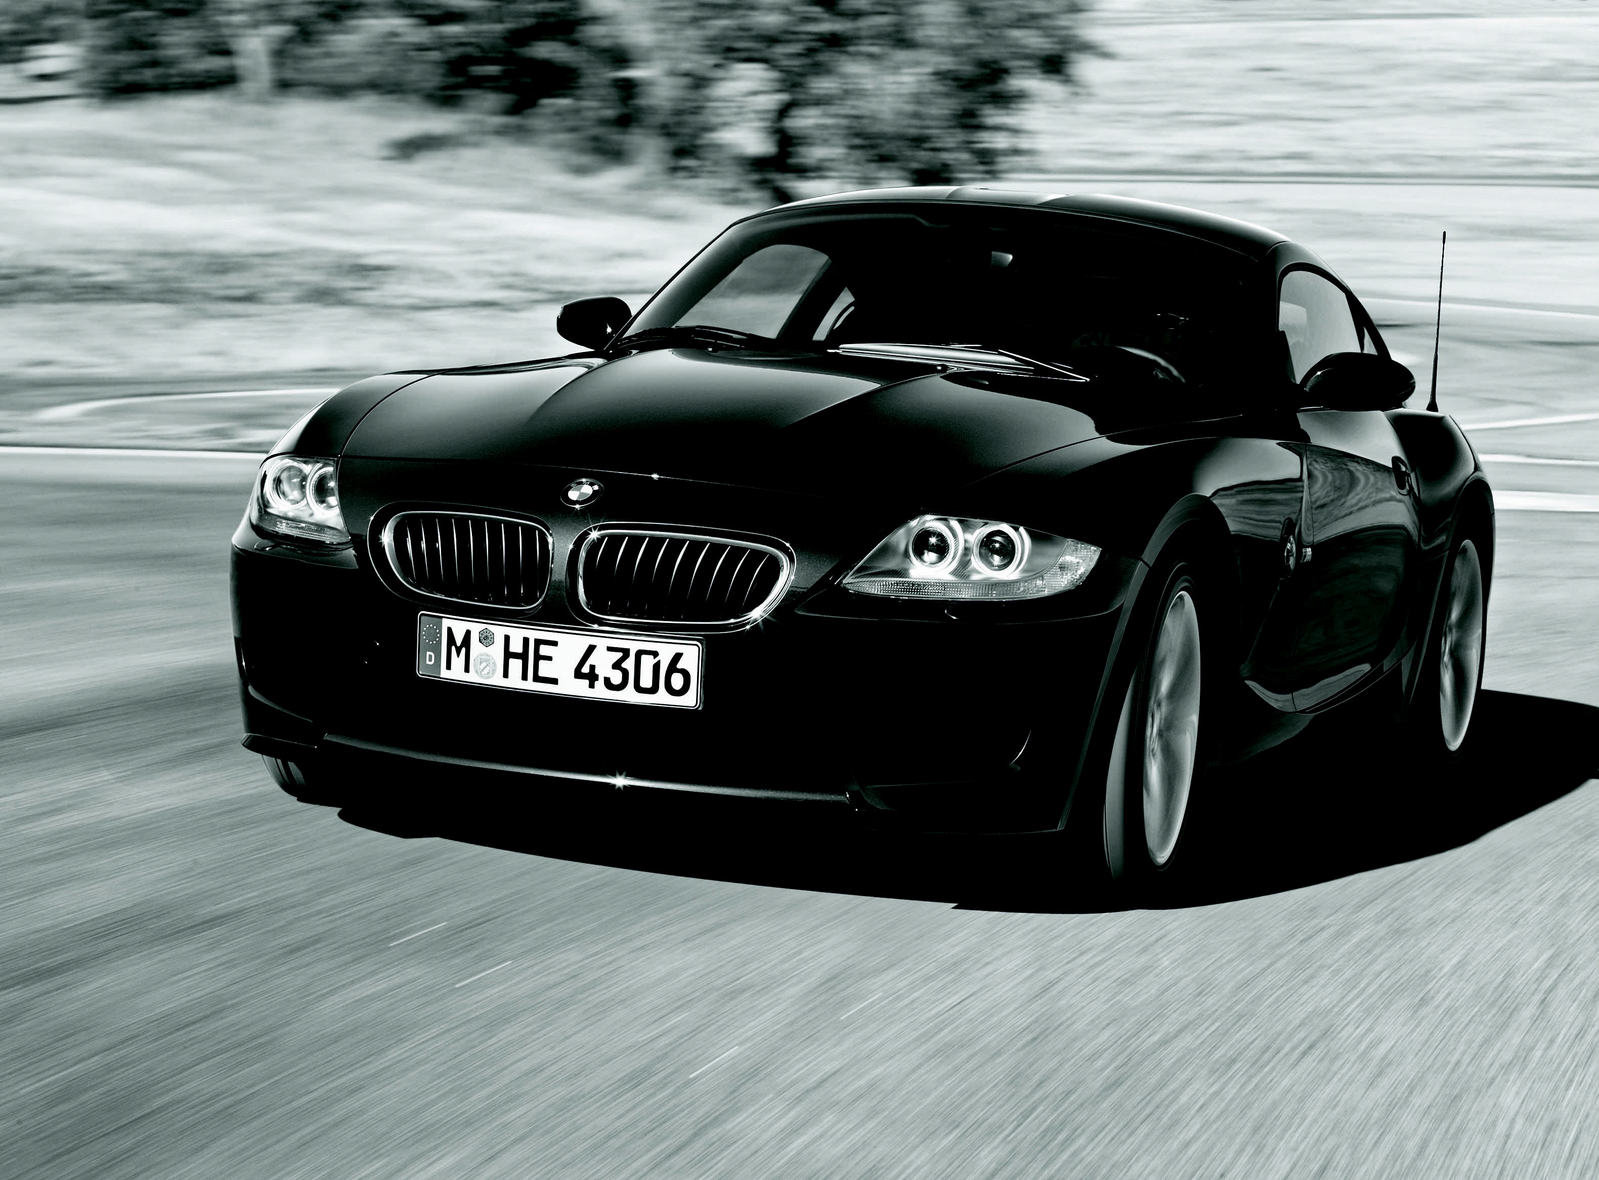 2007 Bmw Z4 M Coupe Picture 35726 Car Review Top Speed